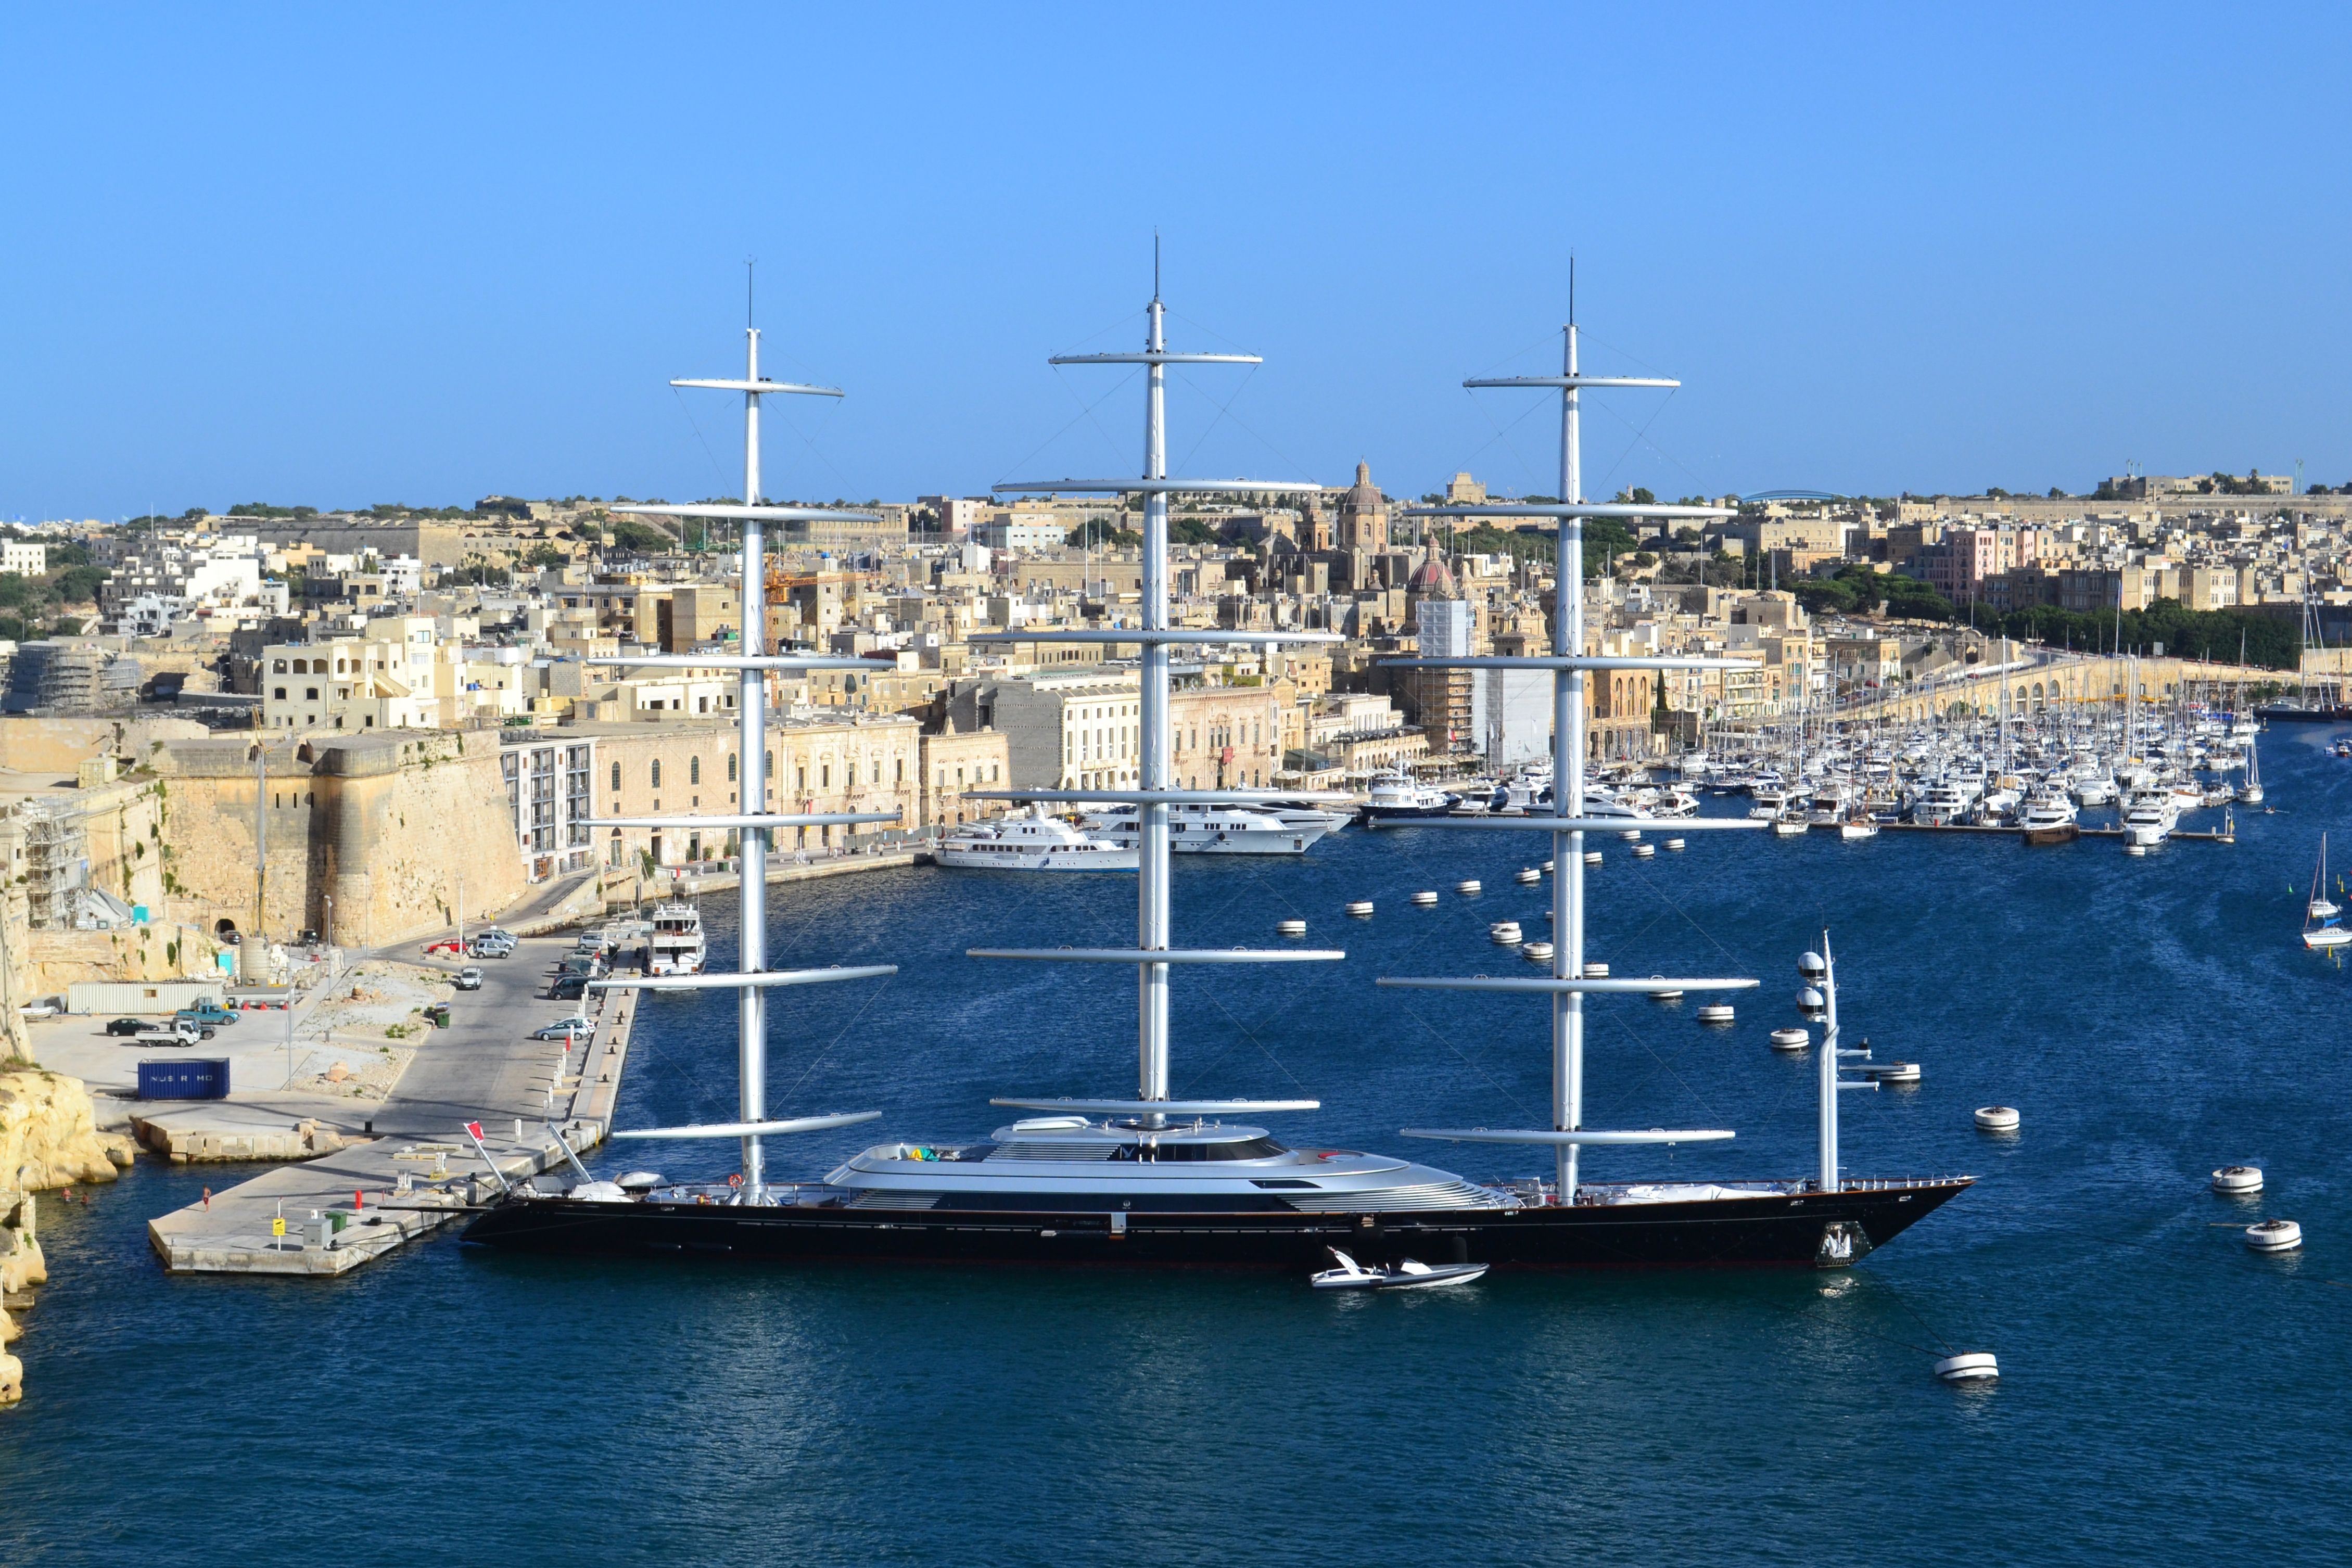 The Largest Sailing Yacht In The World The Maltese Falcon Malta 帆船